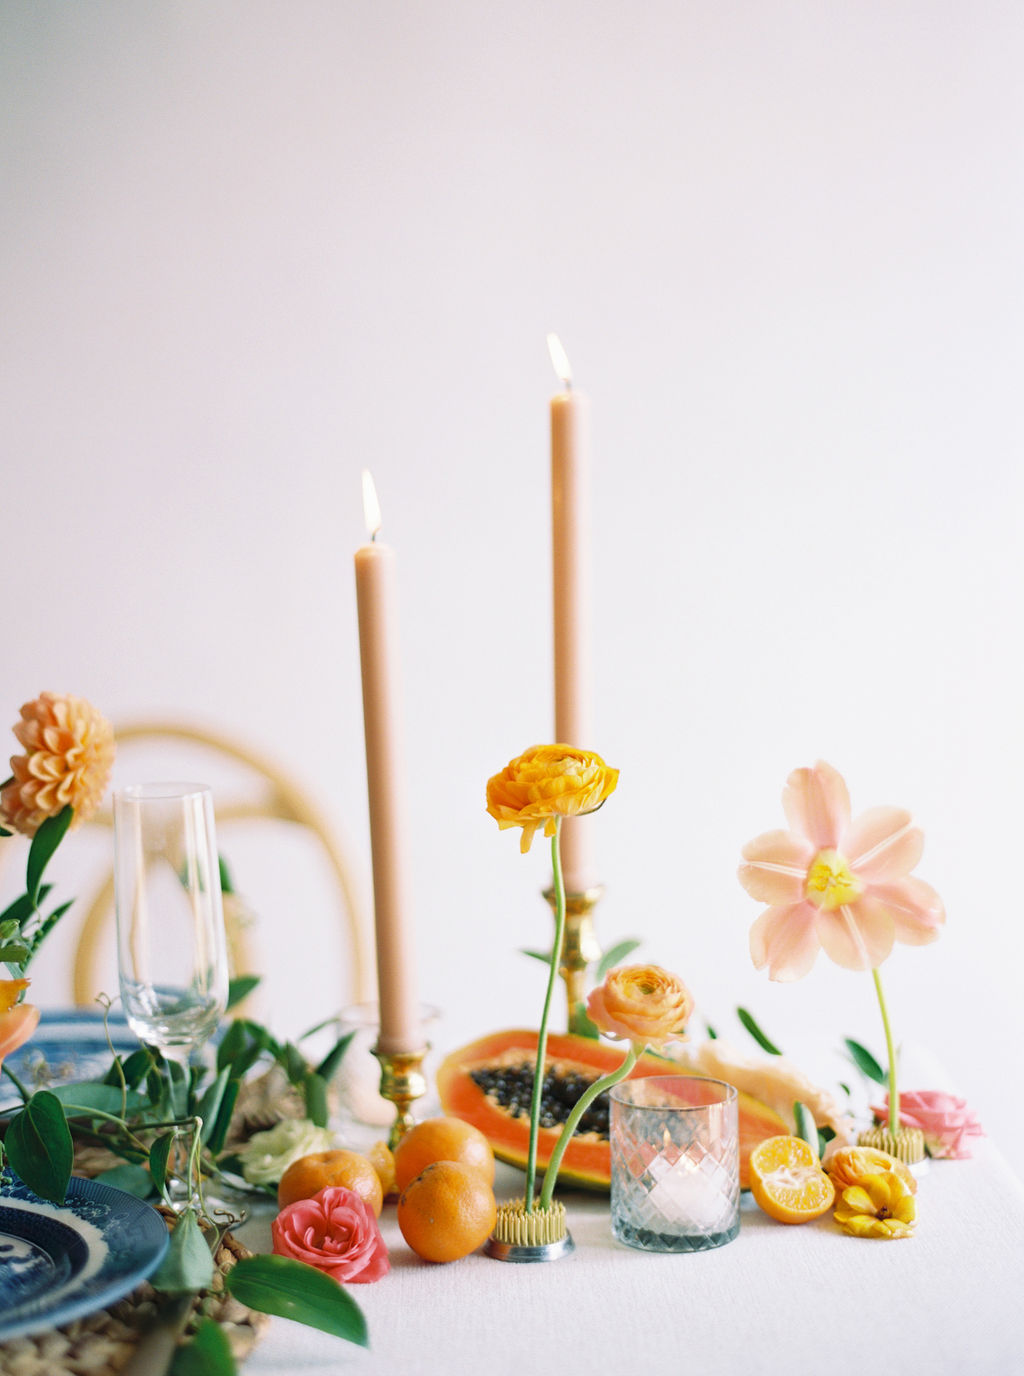 Summer soiree with a papaya inspired table scape. Taper candles and floral frogs as accents. Houston, TX. Floral & Event Design: Maxit Flower Design, Photography:  Courtney Leigh Photography